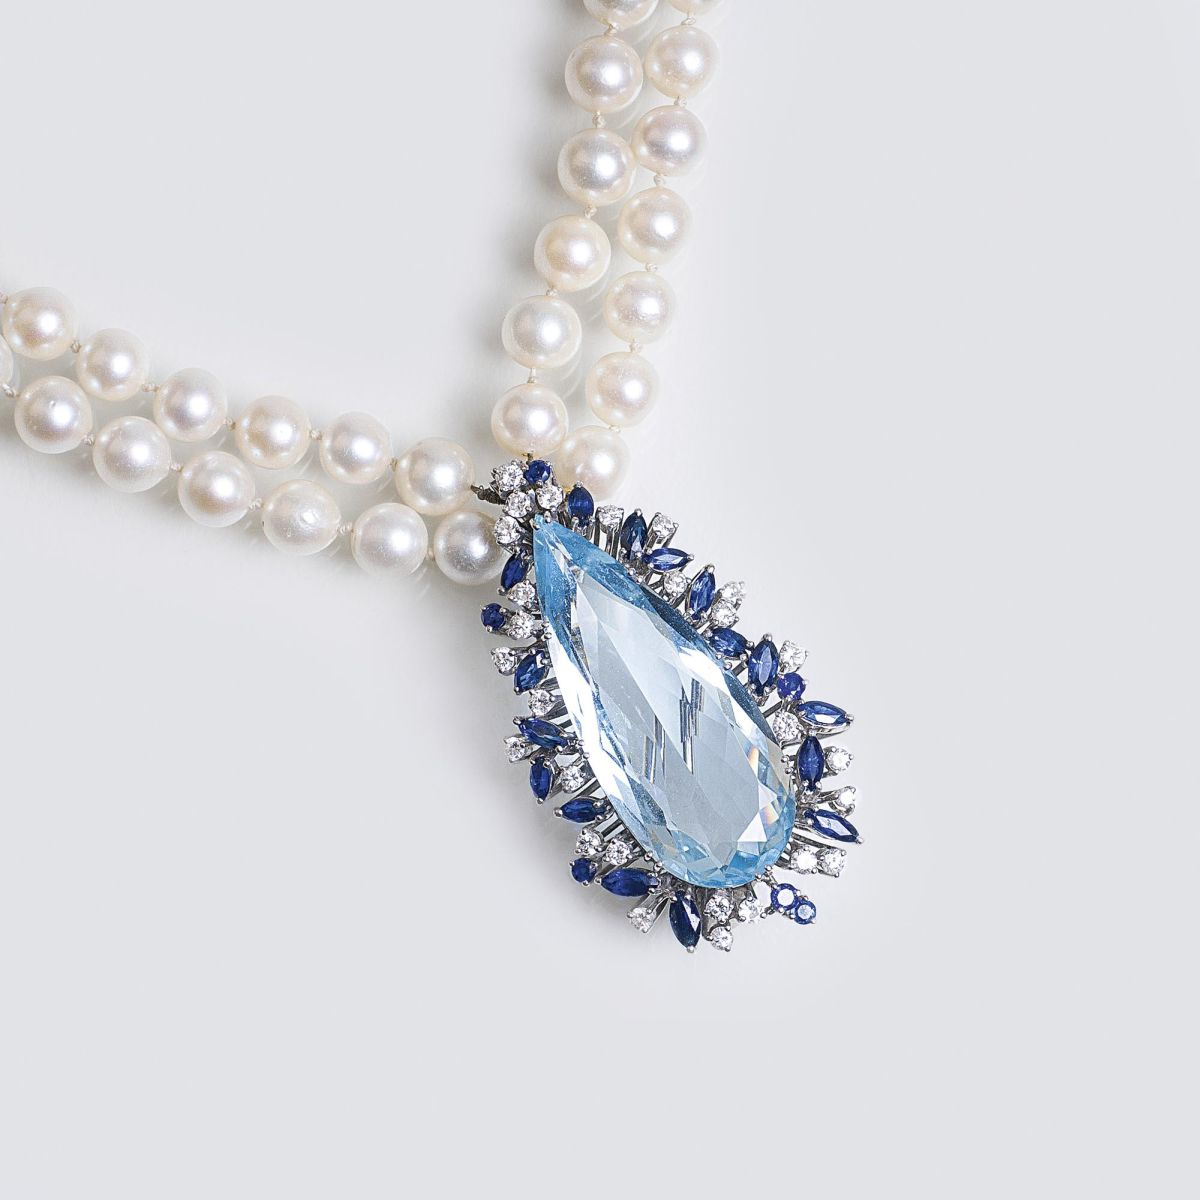 An Aquamarine Sapphire Clip Pendant with Diamonds on Pearl Necklace